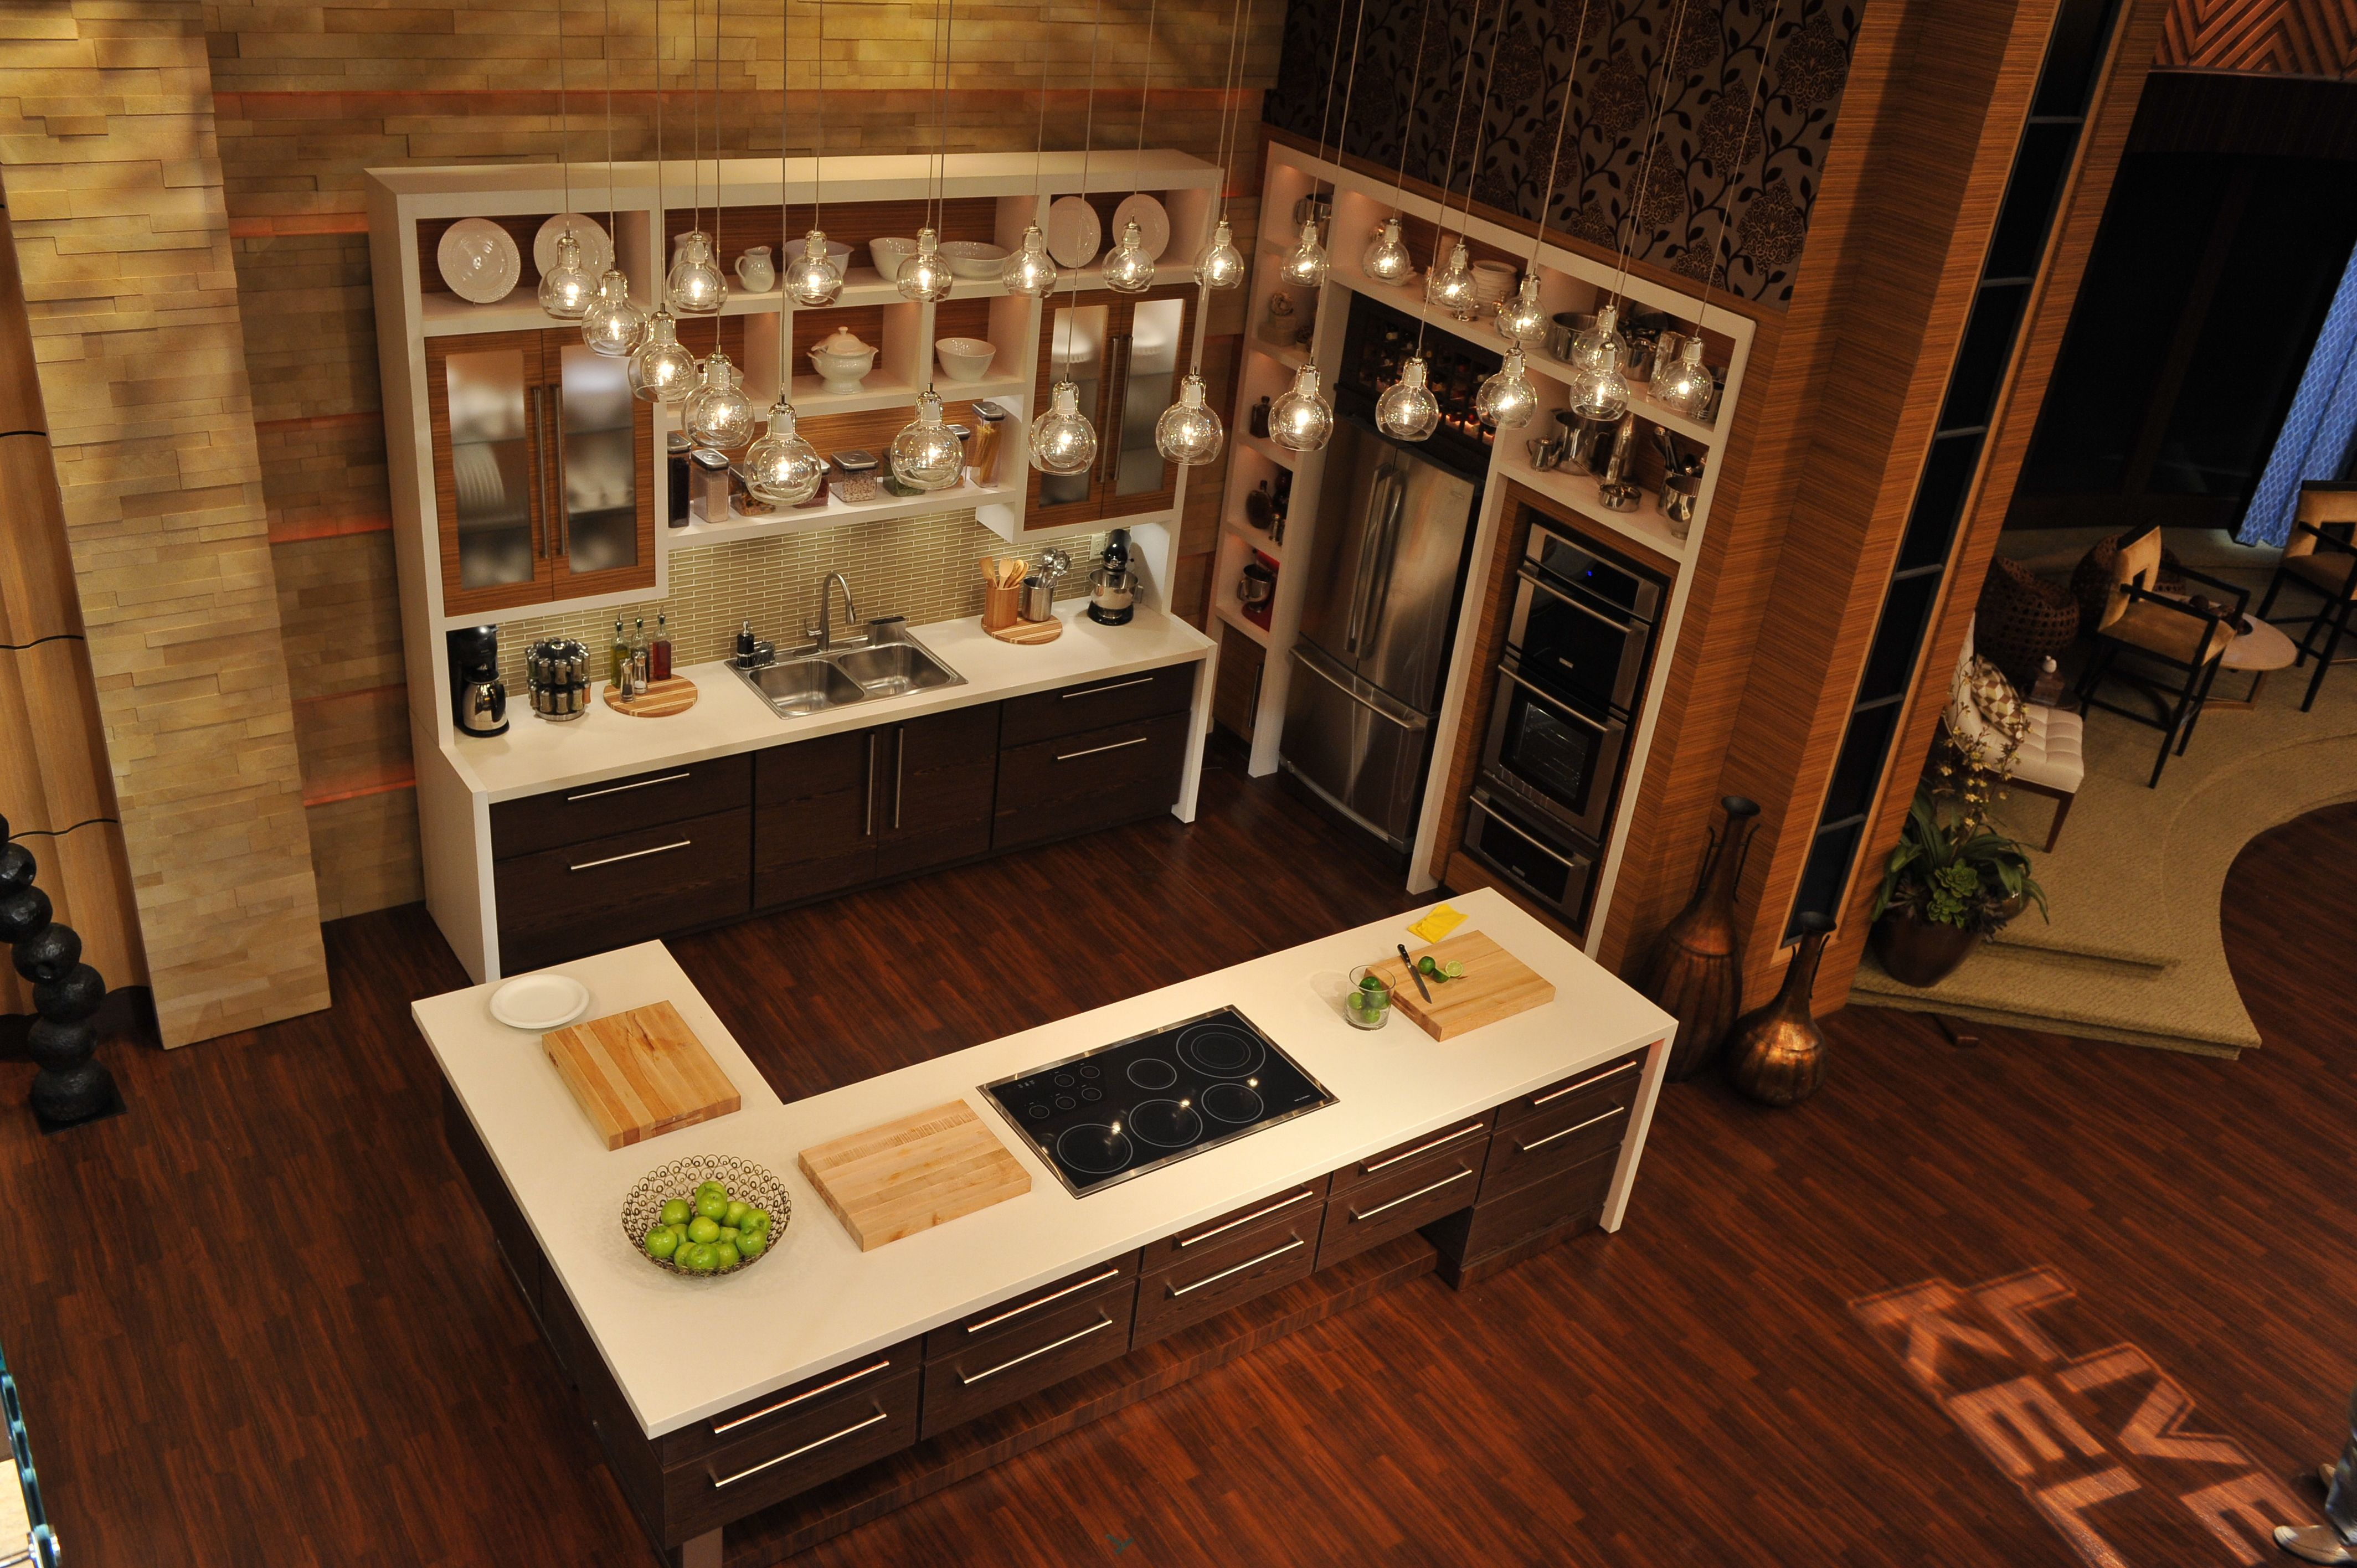 Make sure to keep an eye out for electrolux appliances on the live with kelly kitchen set